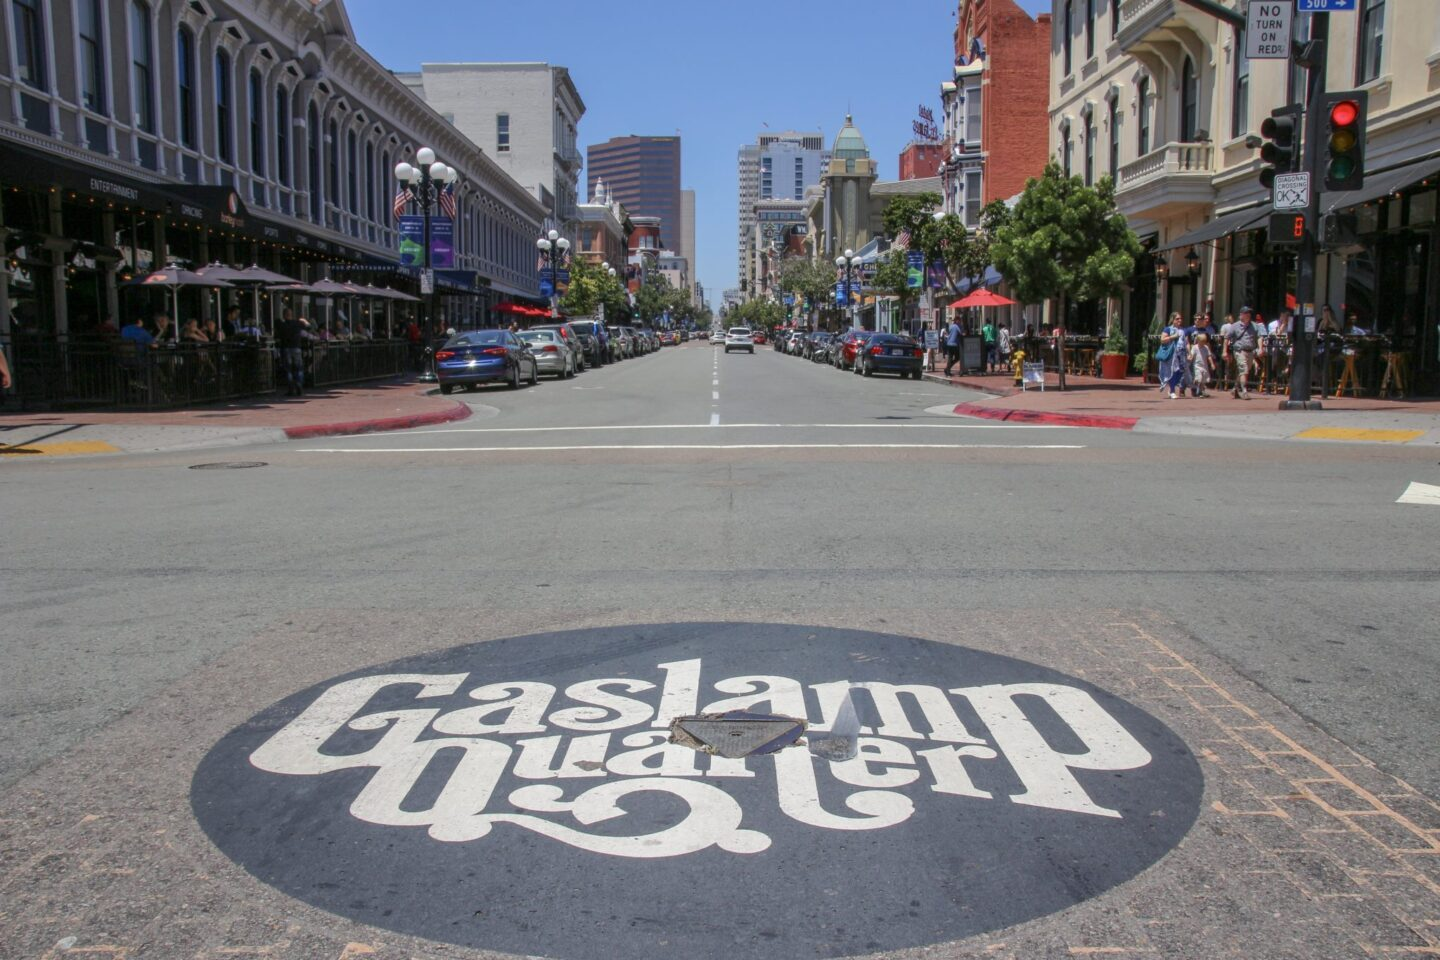 USA: Walking The Gaslamp Quarter, San Diego, California